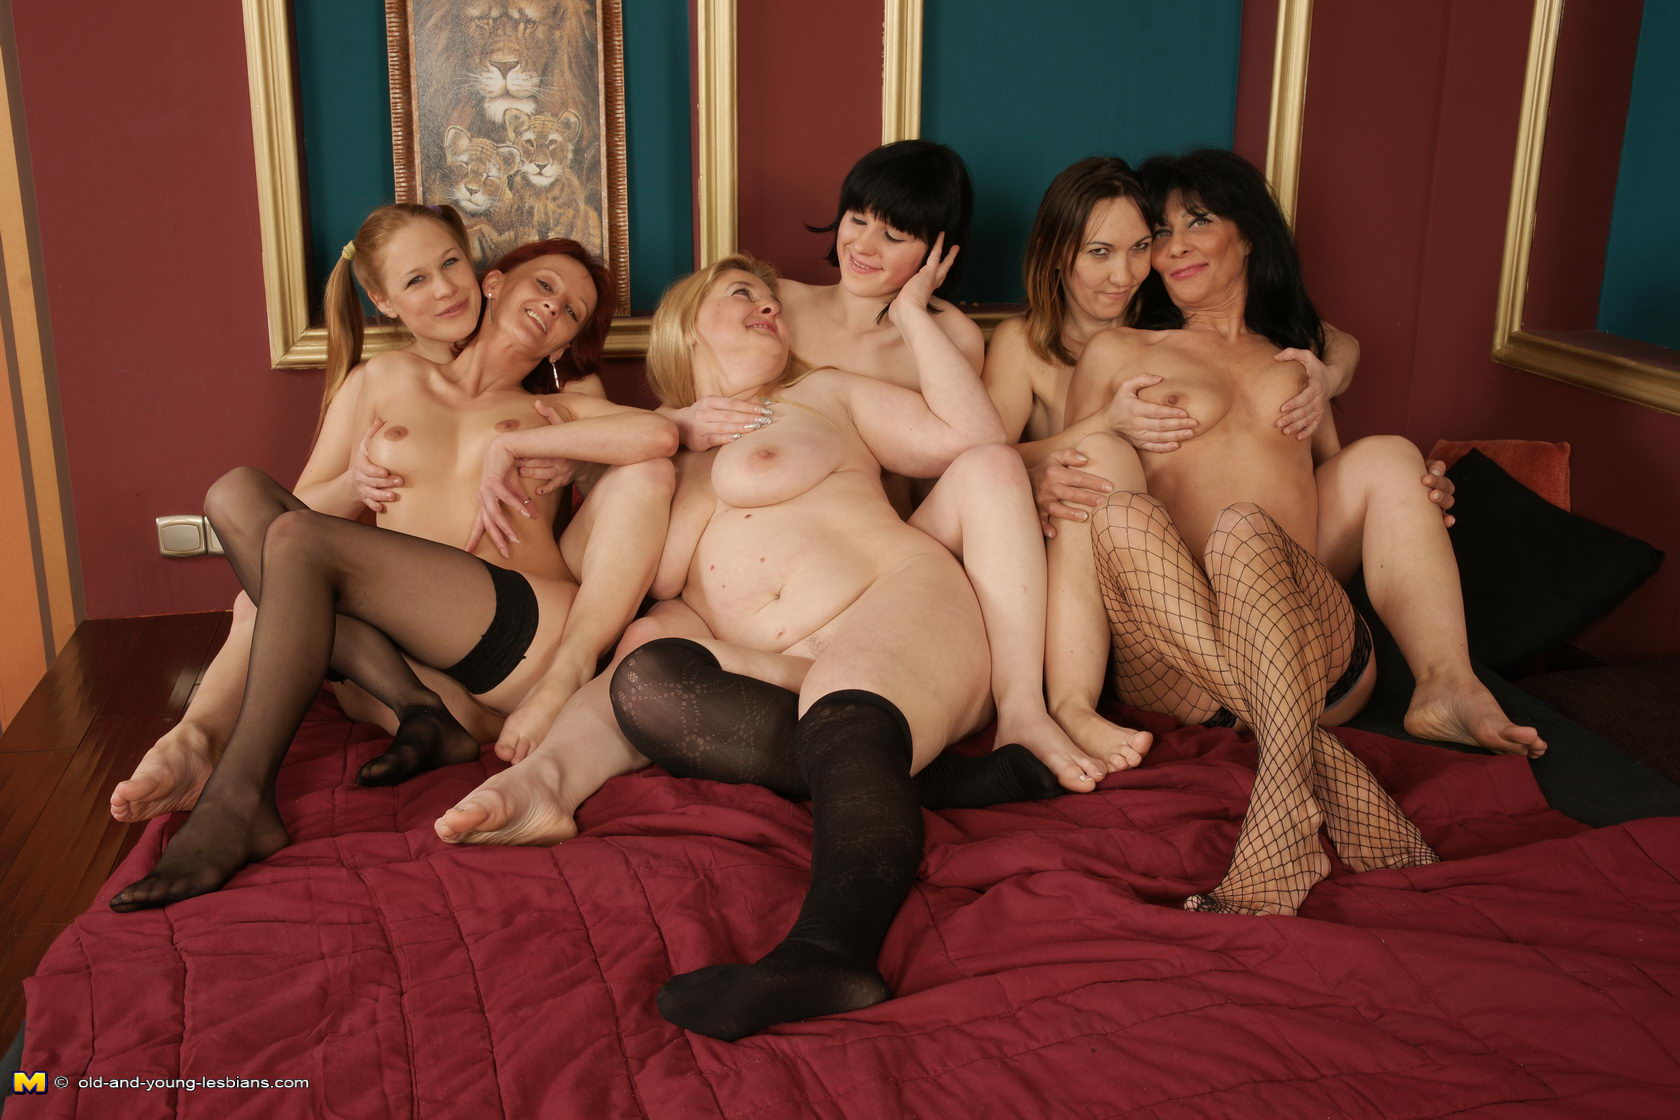 Six old and young lesbians having great sex.